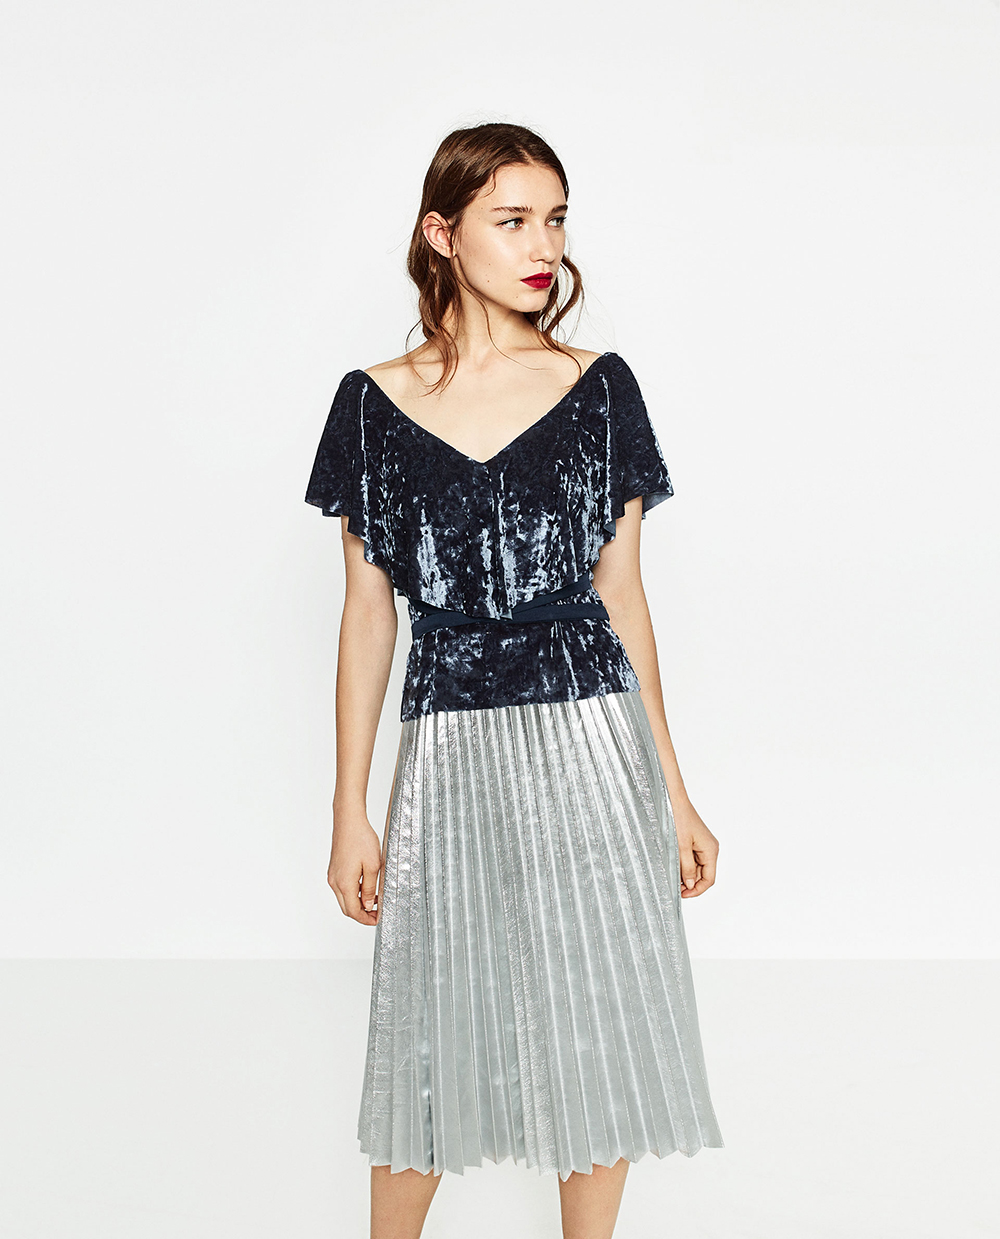 Zara Frilled Velvet Top - 8 Perfect Velvet Pieces for Fall